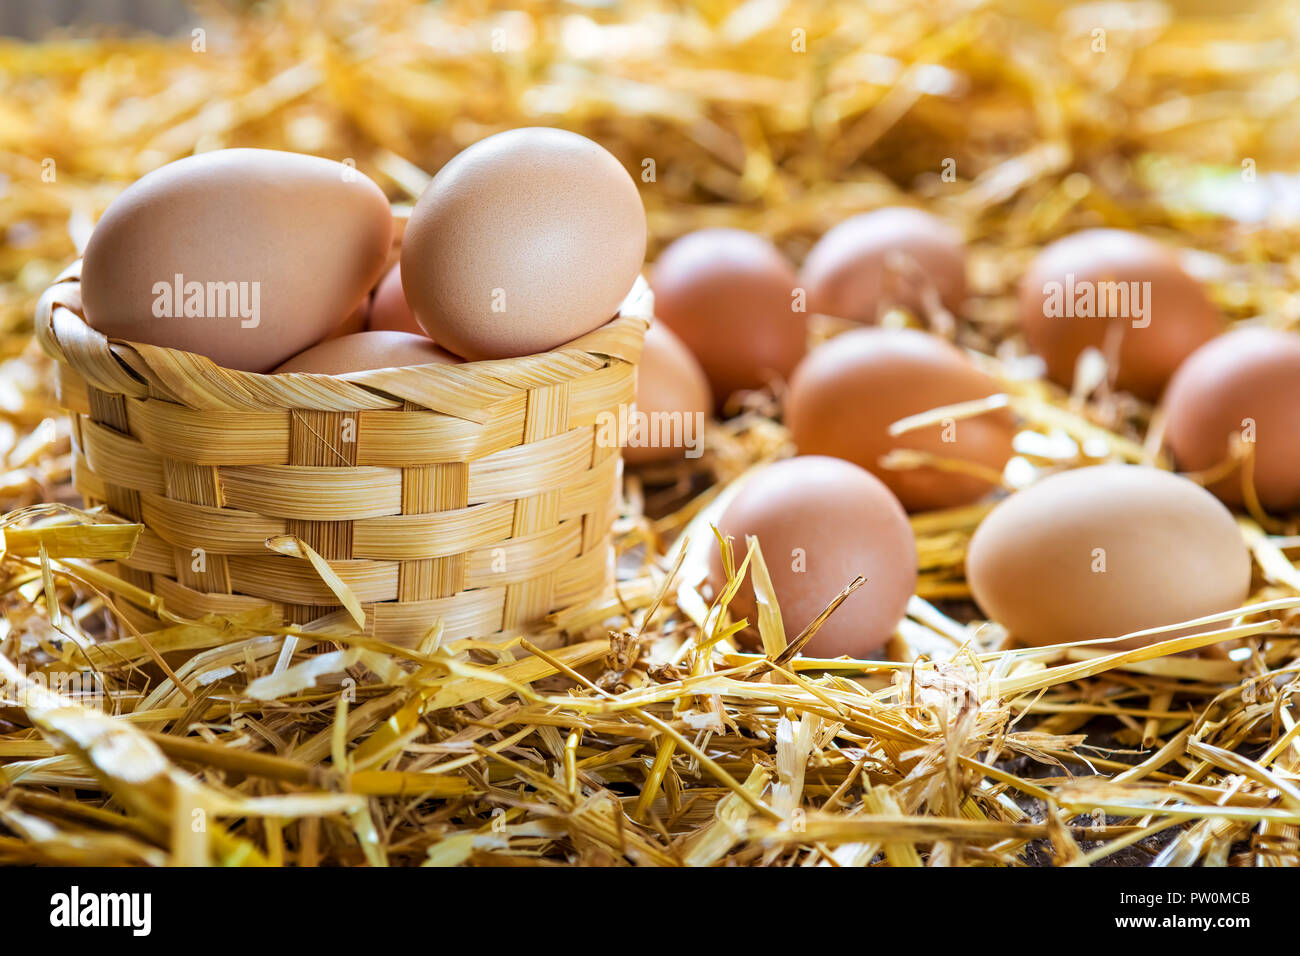 Fresh and organic eggs in basket on straw in nest at farm Stock Photo